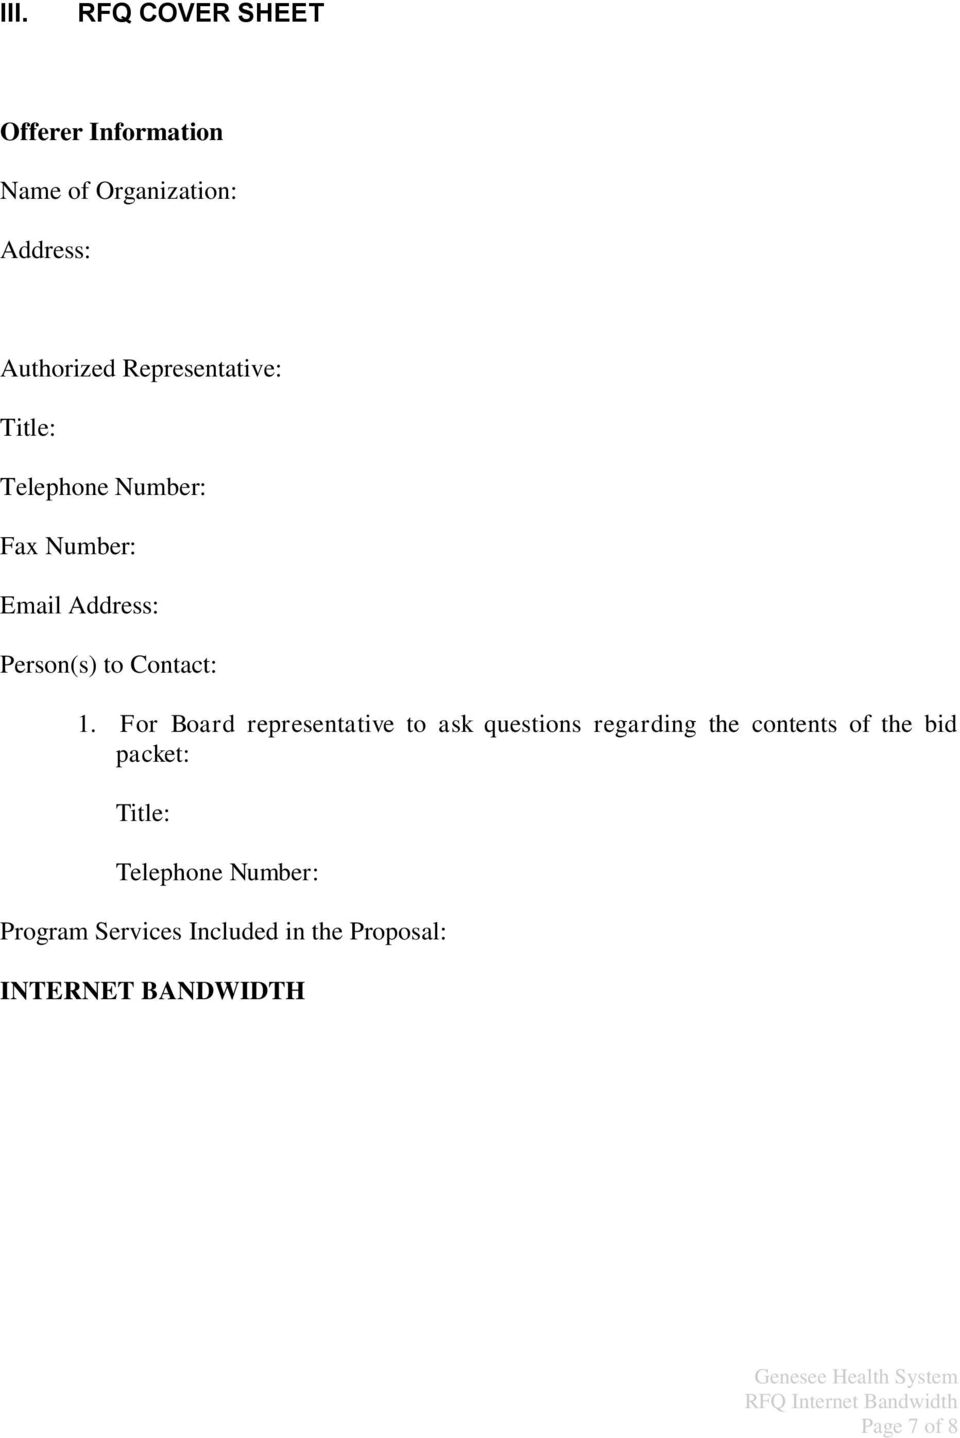 1. For Board representative to ask questions regarding the contents of the bid packet: